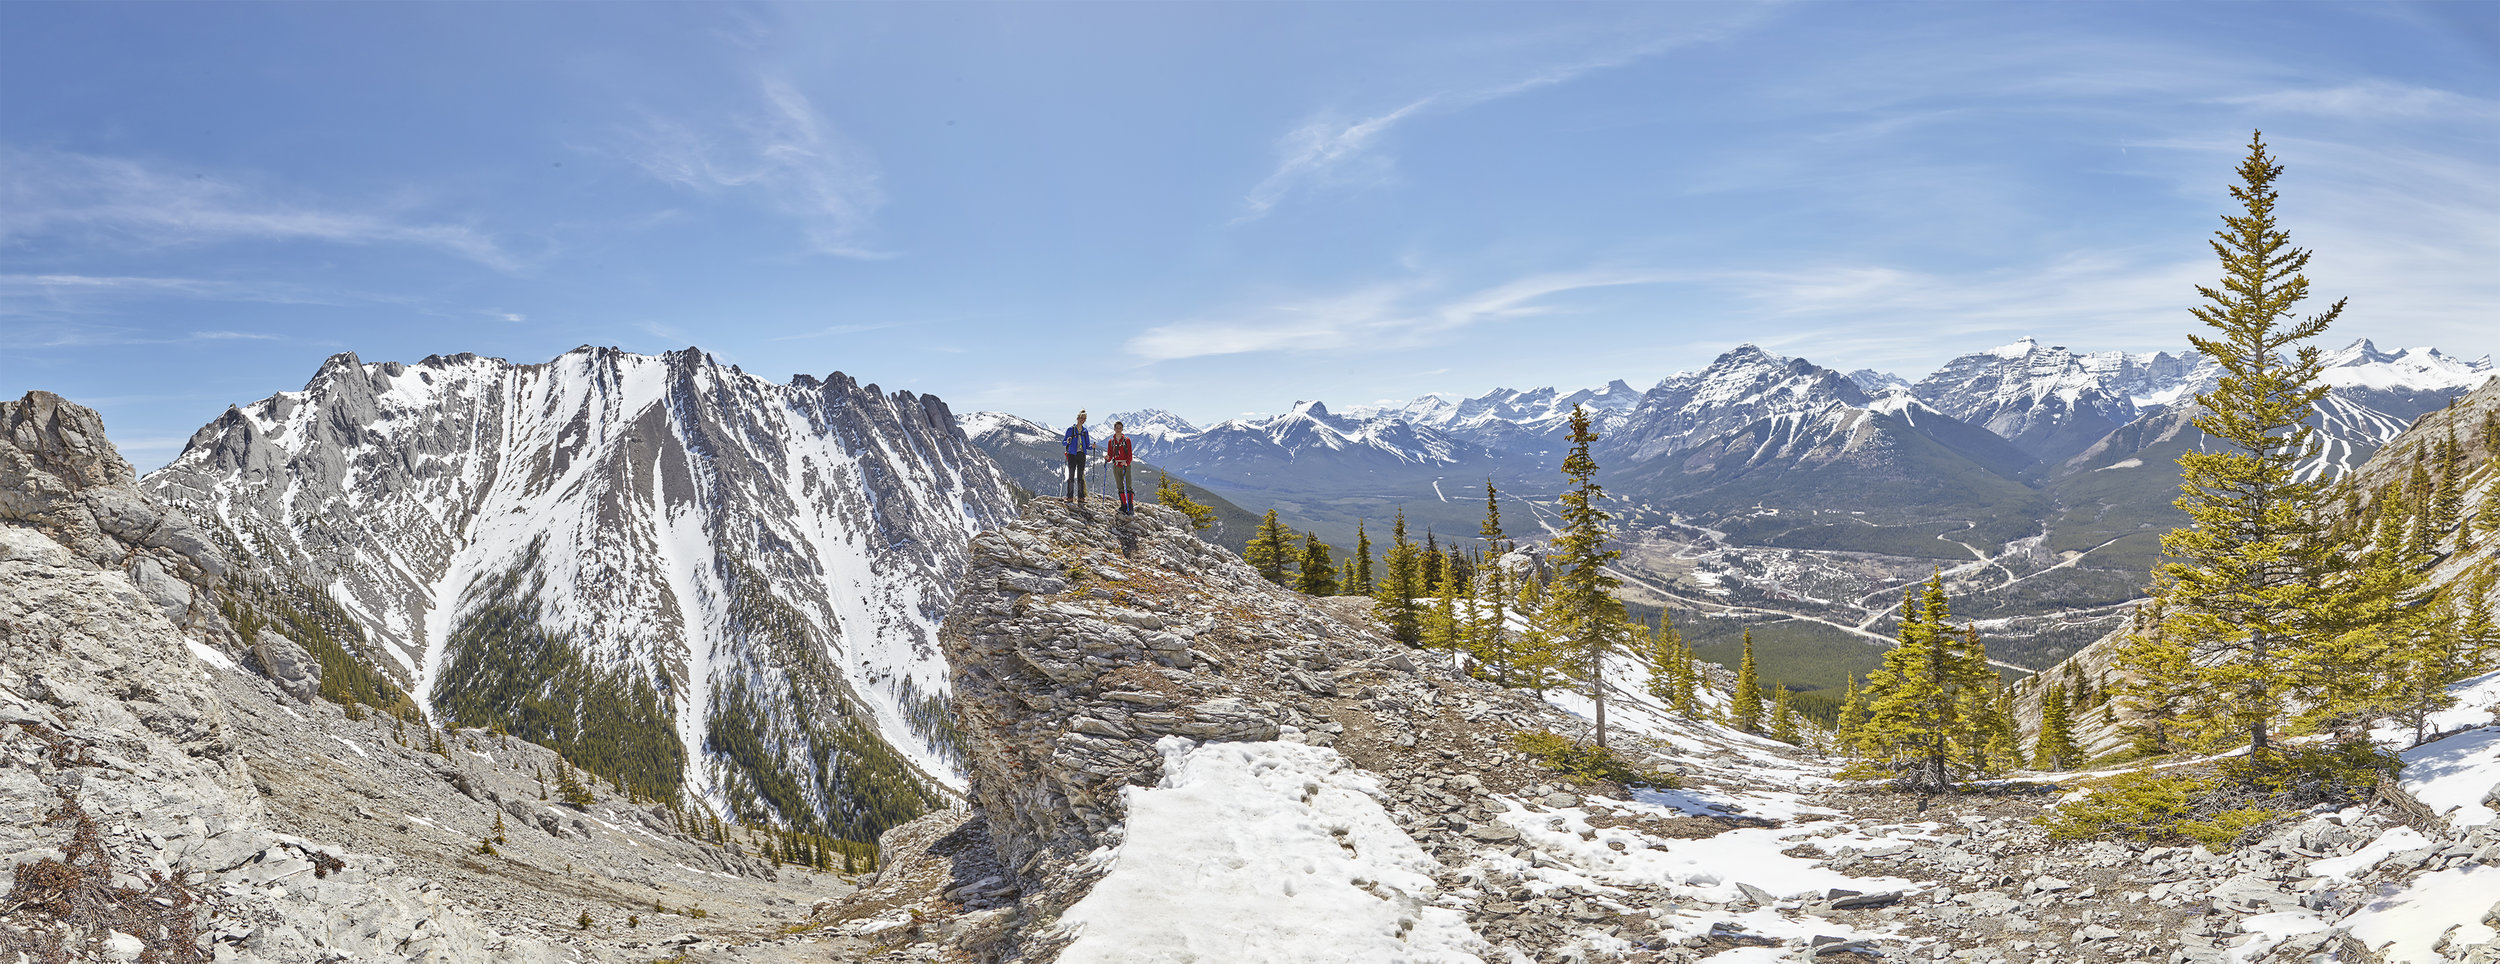 Yuri and Mindy climb a pinnacle on descent. Mount Kidd and the Kananaskis Valley are below to the right.